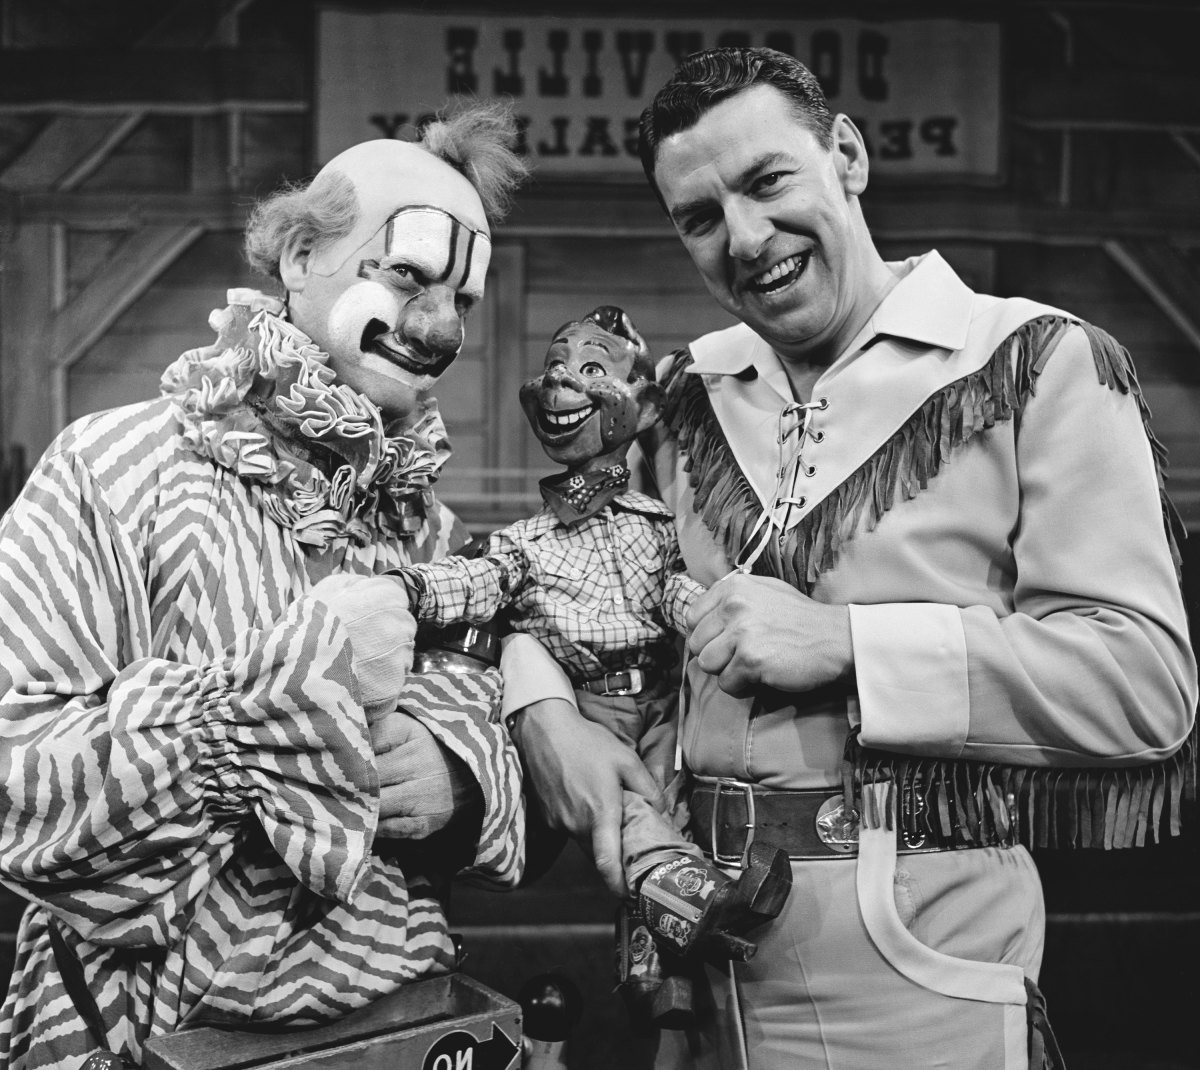 Pictured: (l-r) Lew Anderson as Clarabell the Clown, Howdy Doody, Bob Smith as Buffalo Bob Smith